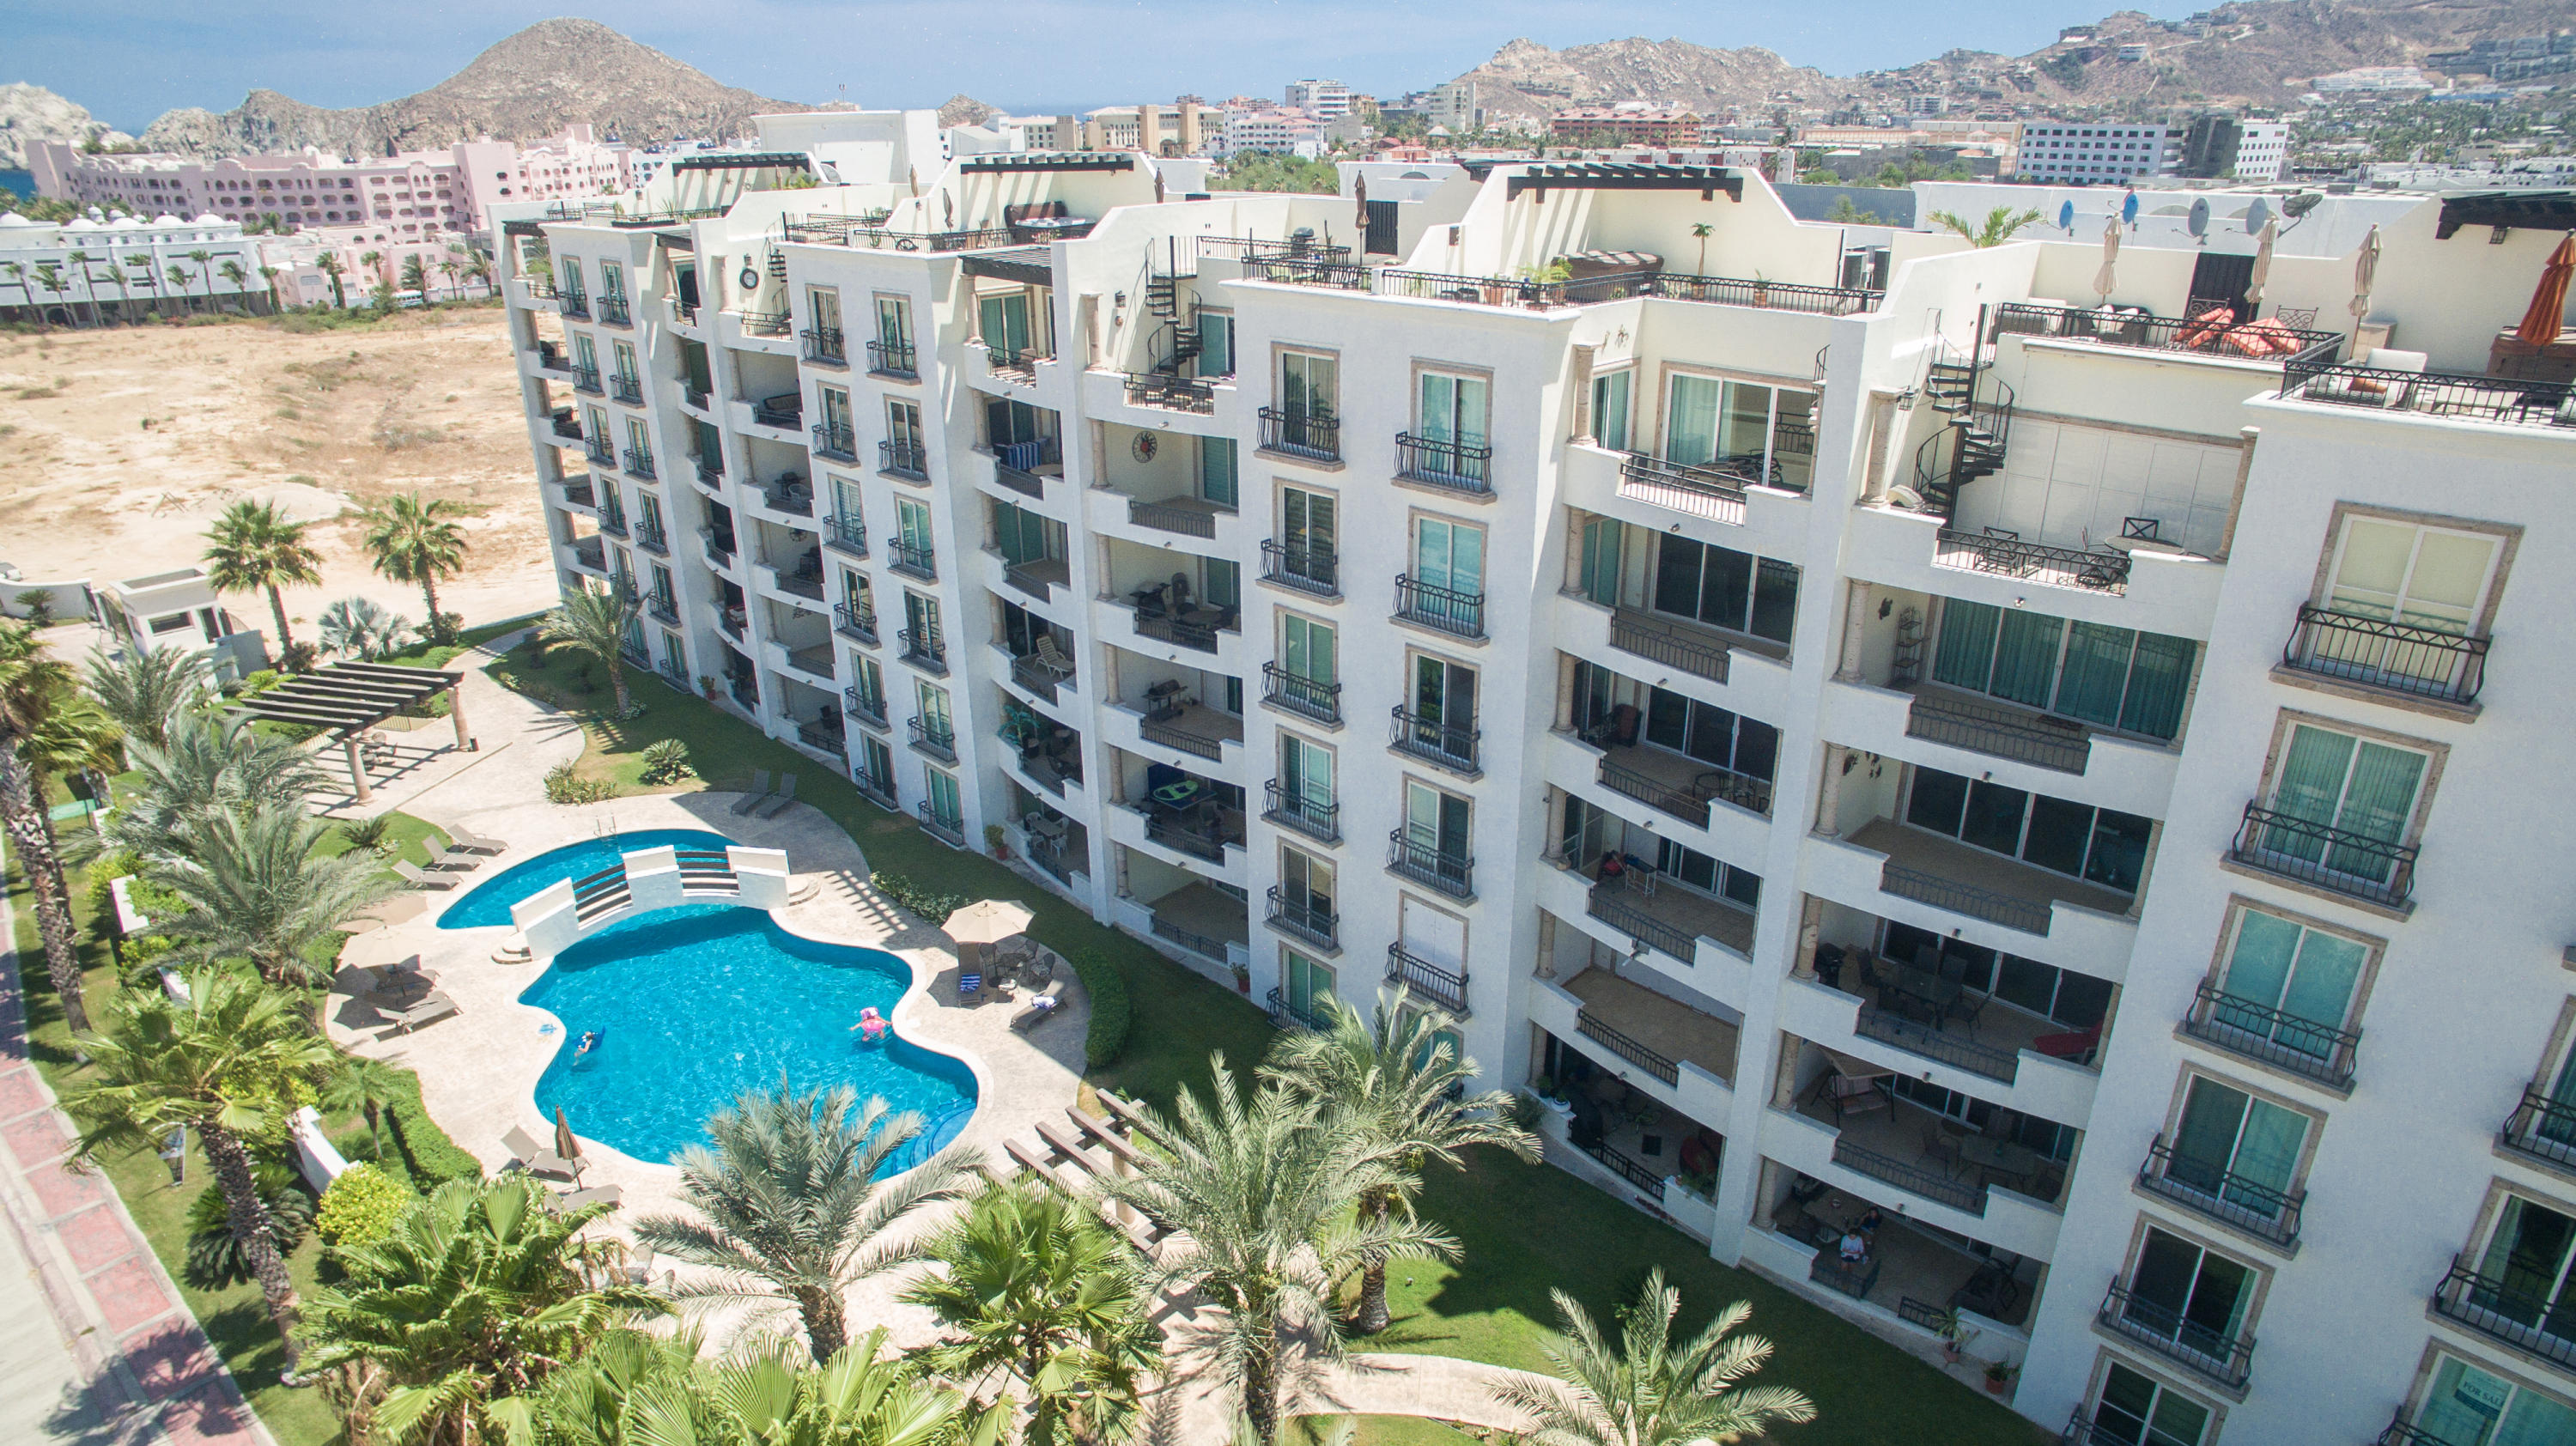 Cabo San Lucas, 2 Bedrooms Bedrooms, 2 Rooms Rooms,2 BathroomsBathrooms,Condo,For Sale,Constituyentes,16-2405